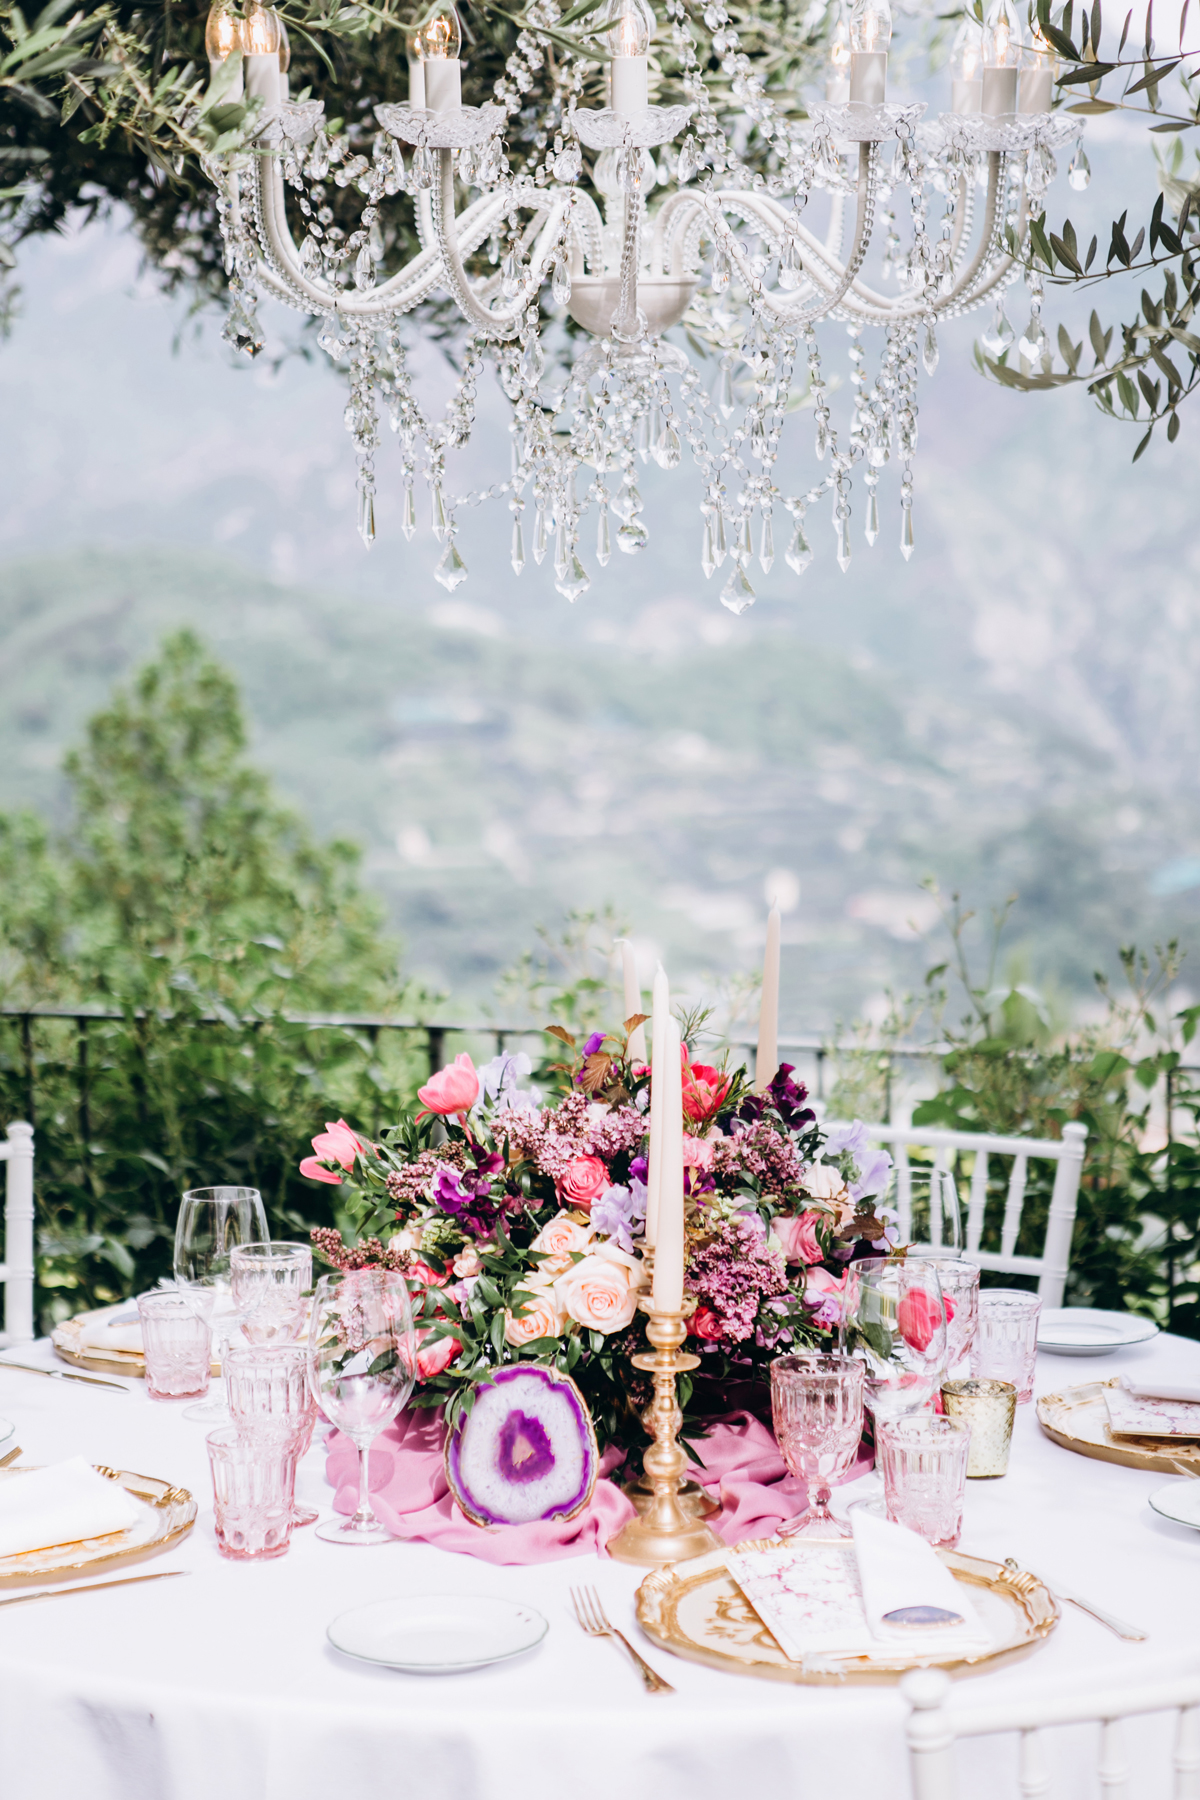 Elegant Outdoor Wedding Table Setting